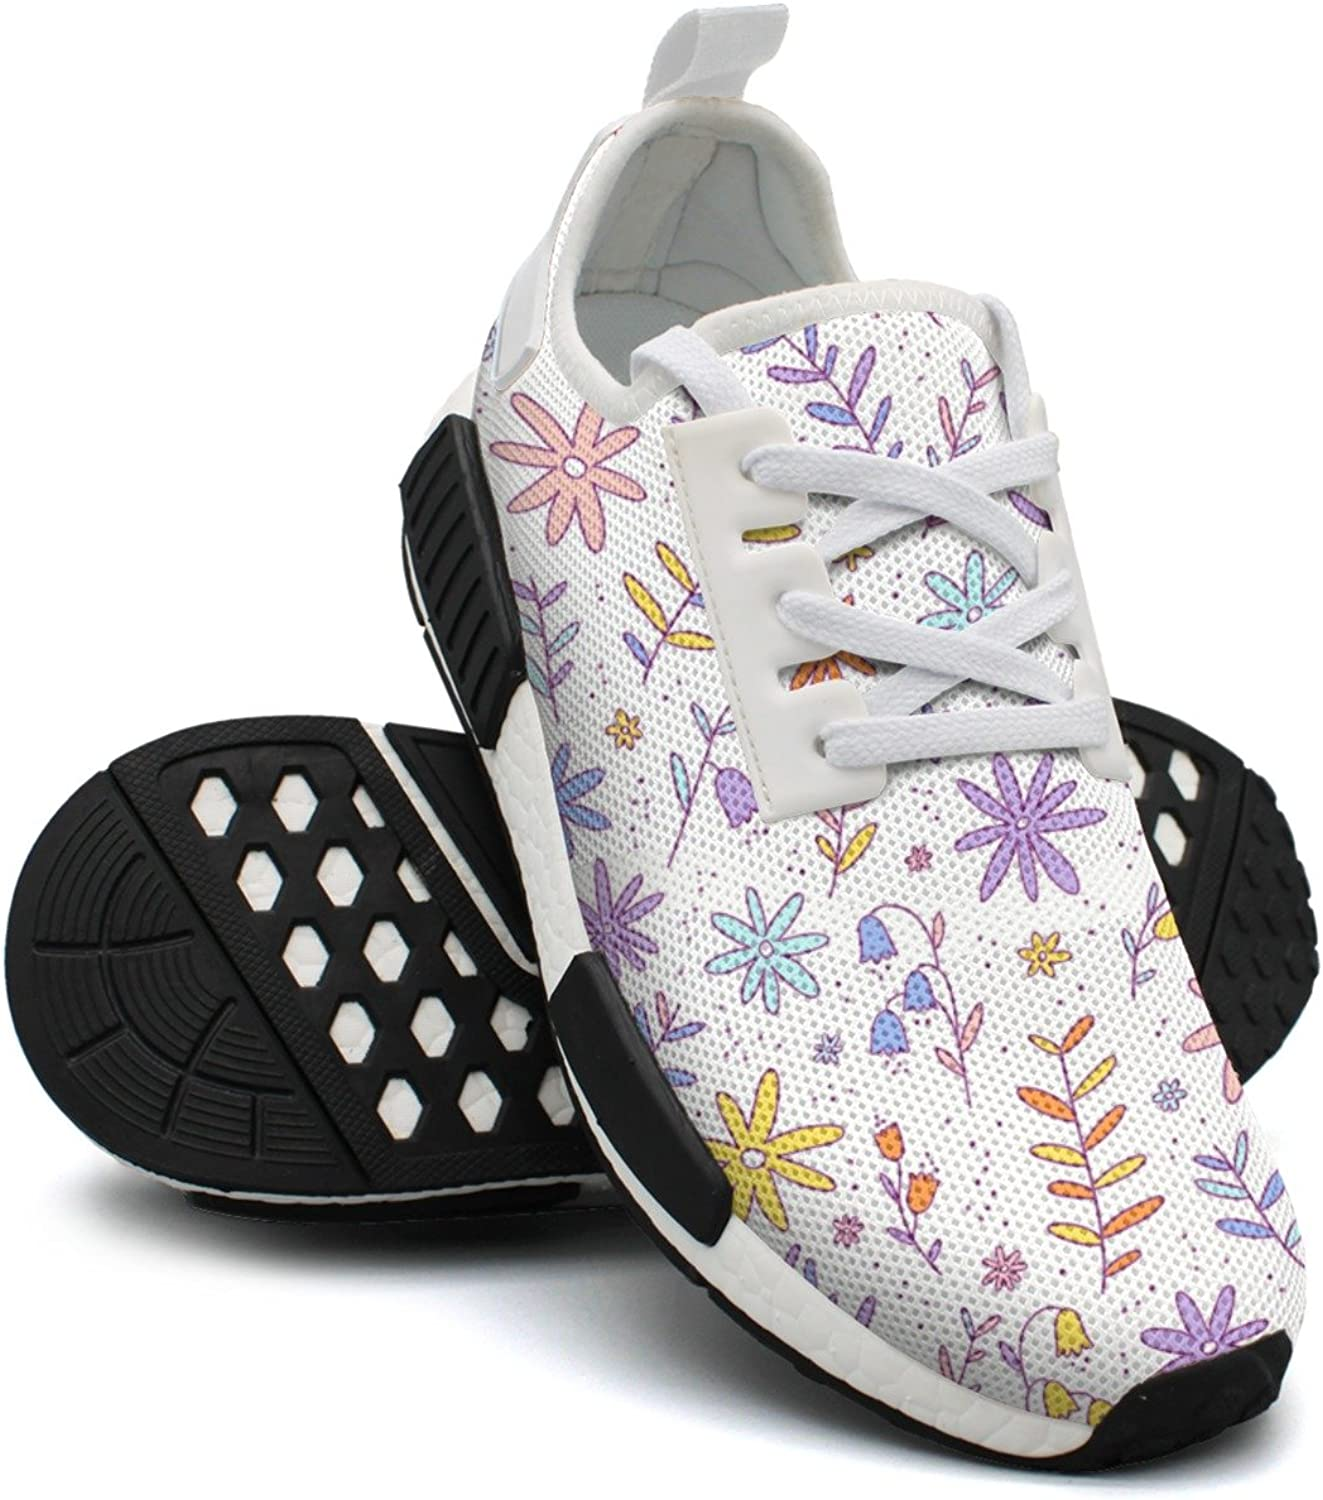 Ktyyuwwww Womens colorful Camping colorful Flowers Hunting Design Running shoes